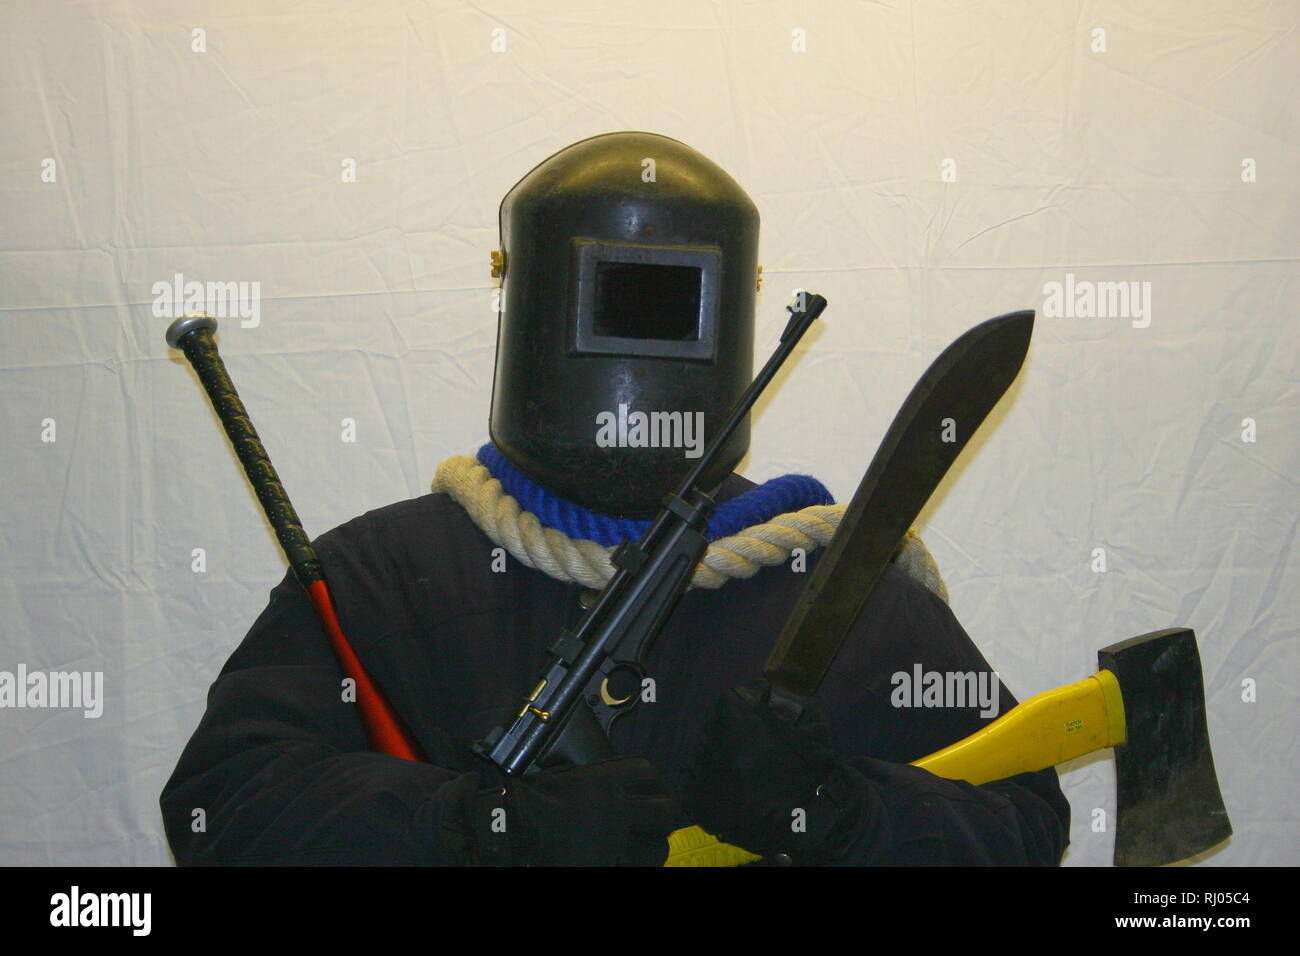 Weapons. Knife crime. Knives. Guns. Rifle. Air weapons. Blunt instrument. Baseball bat. Axe. Machete. Rope. Heavily armed man. Face covering. Anonymity. Violent society. Sick society. Concepts. Conceptual. Education. Mask. Welders mask. Going equipped. Tooled up. Offensive weapons Gangs. Armed gangs. Book cover. Stock Photo